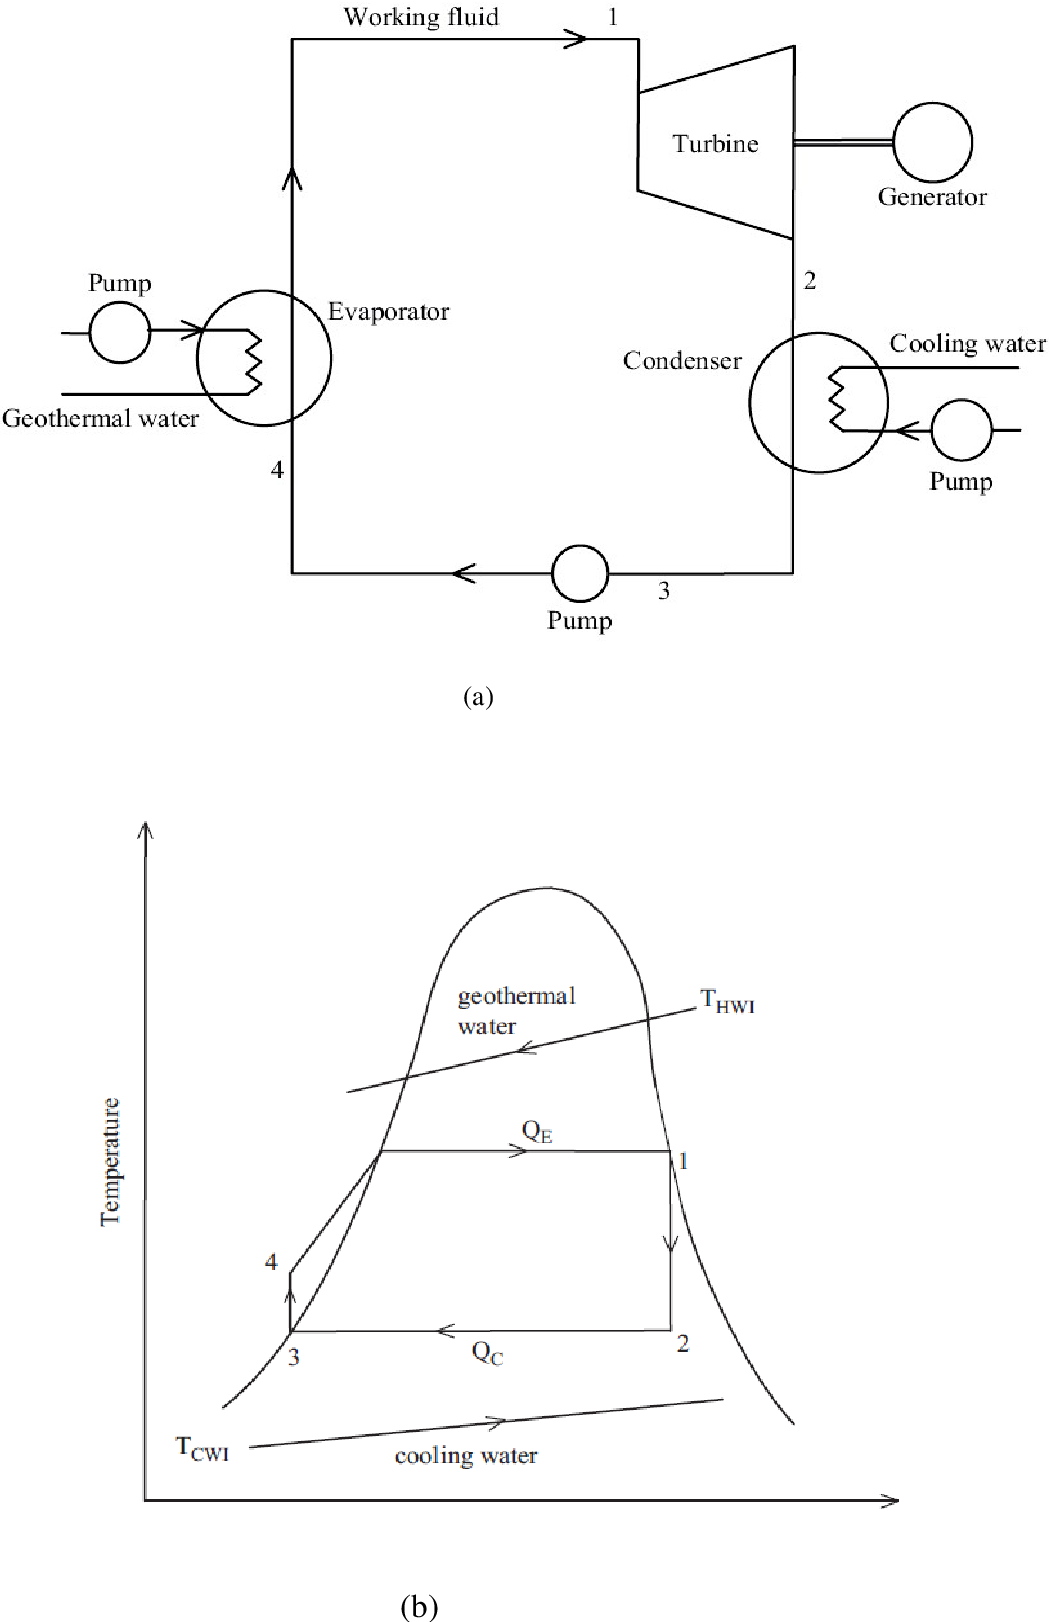 Figure 2.1 from Design-to-Resource (DTR) using SMC Turbine ... on